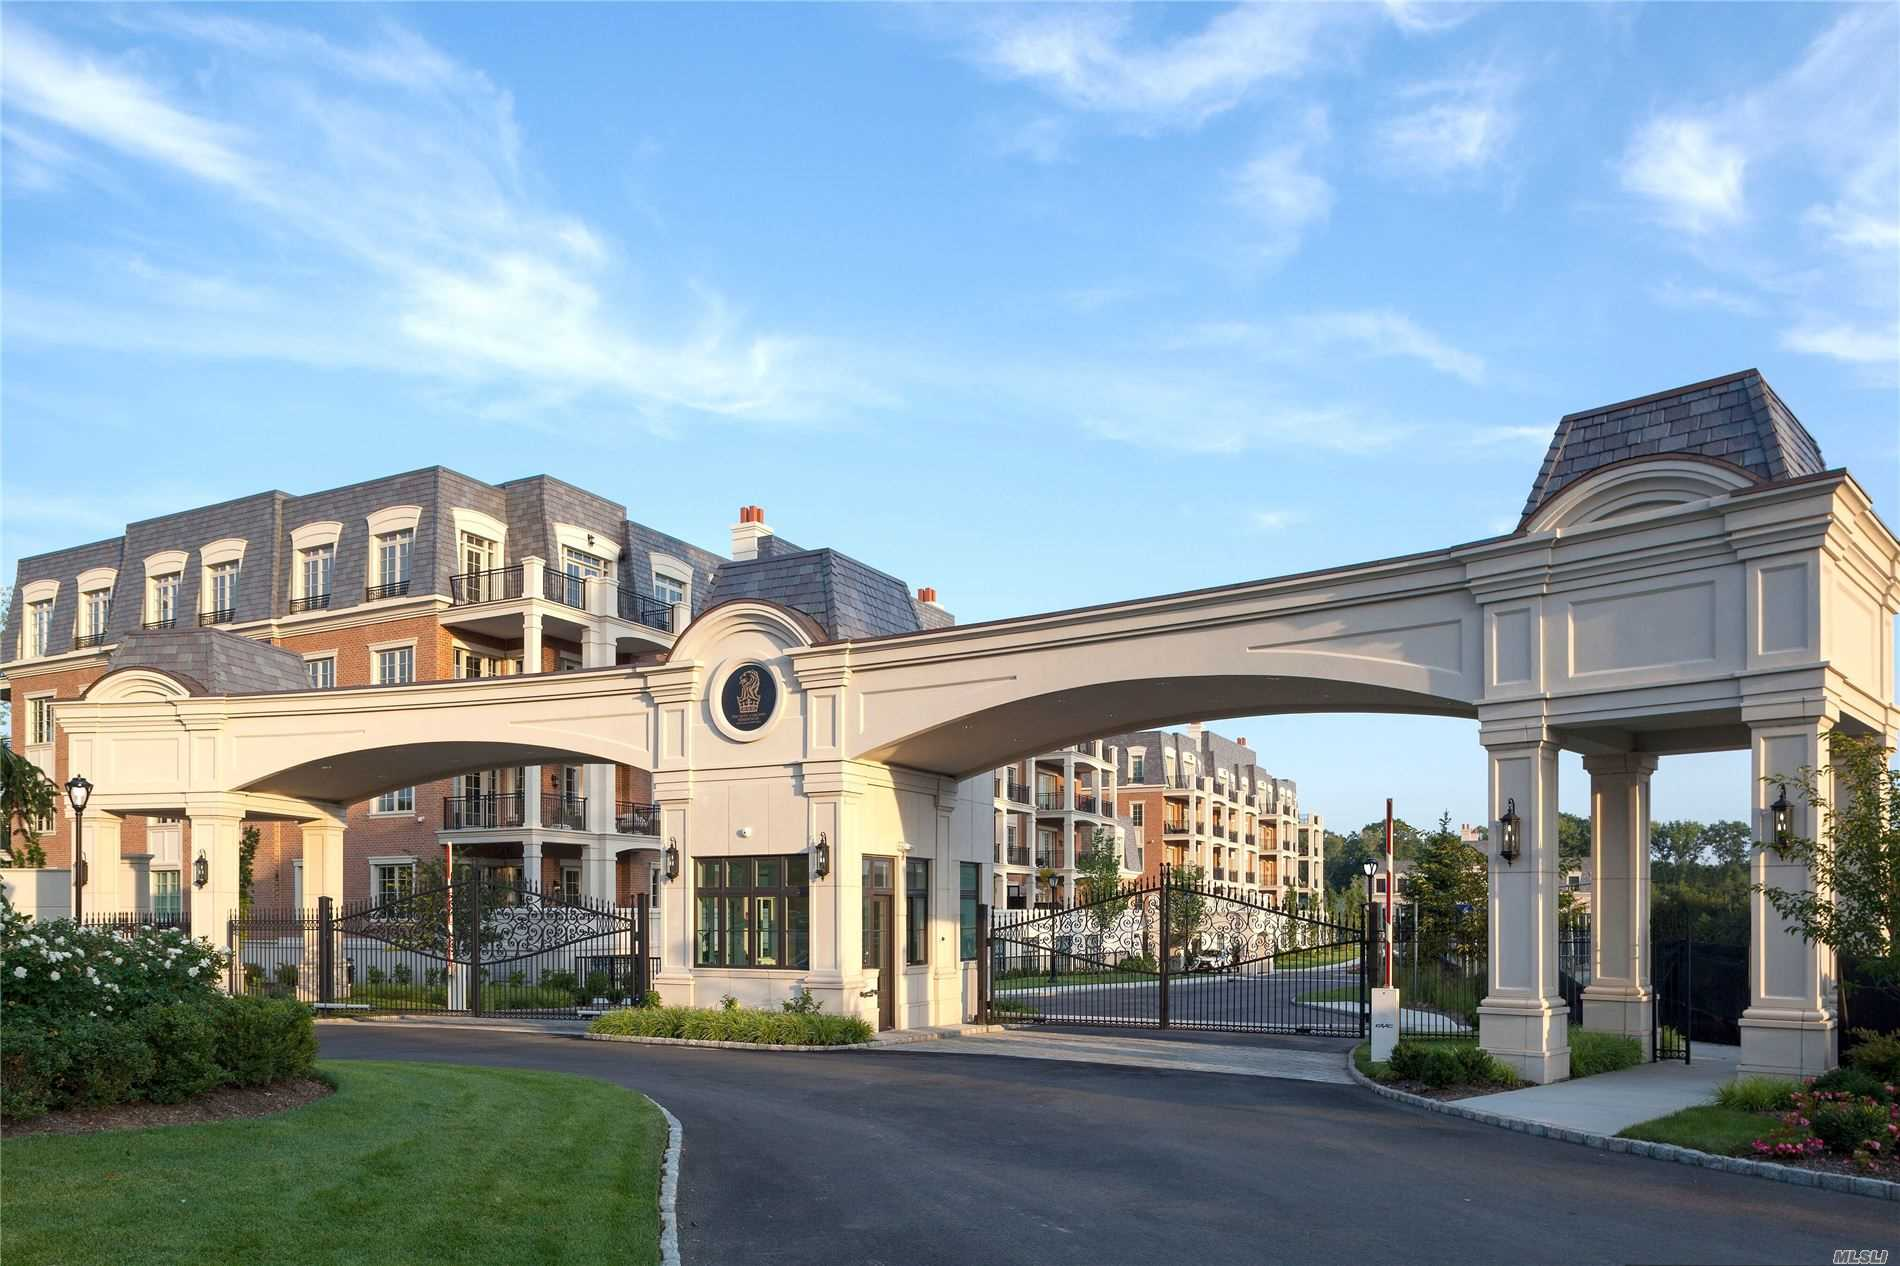 Make yourself at home in this 3 bed, 3.5 bath North HIlls Home that features an open floor plan with a dining rm, living rm, den, a double-sided gas fireplace, and chef's kitchen with Sub-Zero & Wolf appliances. The large terrace overlooks the pool and clubhouse. The Ritz-Carlton Residence lifestyle amenities include 24-hour Concierge & Valet, Theater, Fitness Center, Indoor and Outdoor pools and Generator. Car service to LIRR. 20 mi from Midtown.